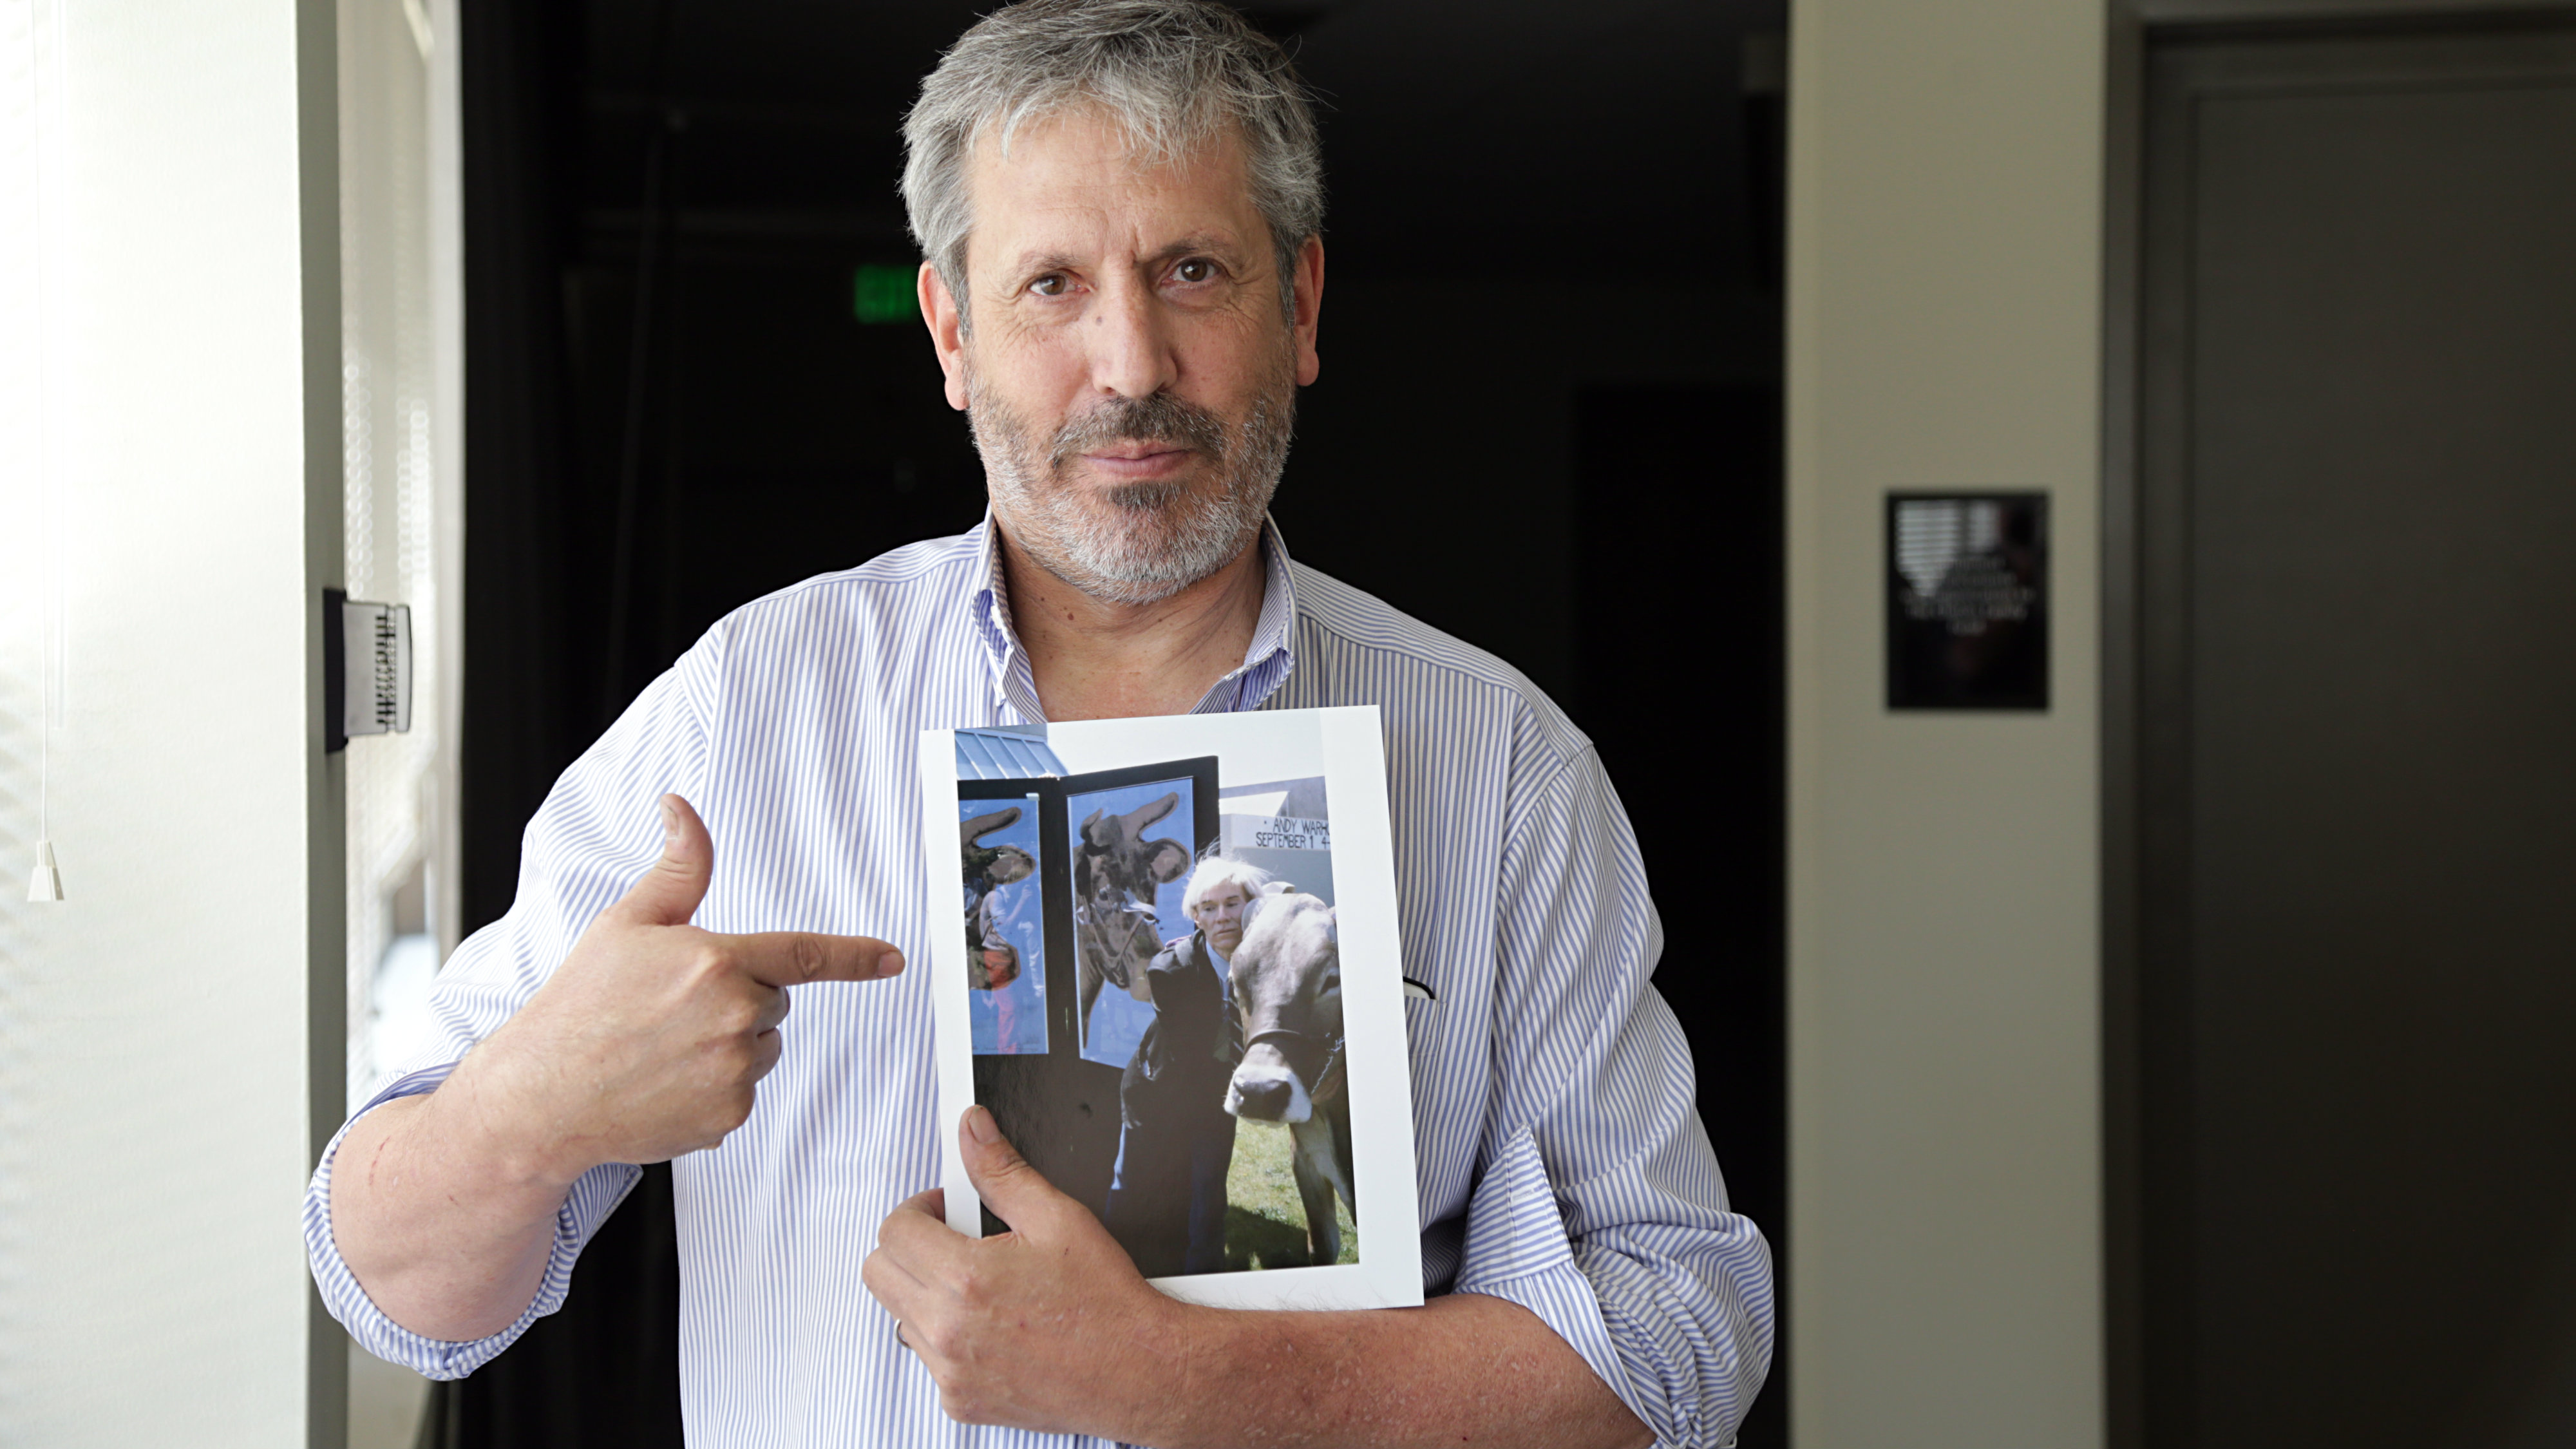 <p>Denver photographer Mark Sink holds an image he took of Andy Warhol during one of the pop artist's visits to Colorado.</p>